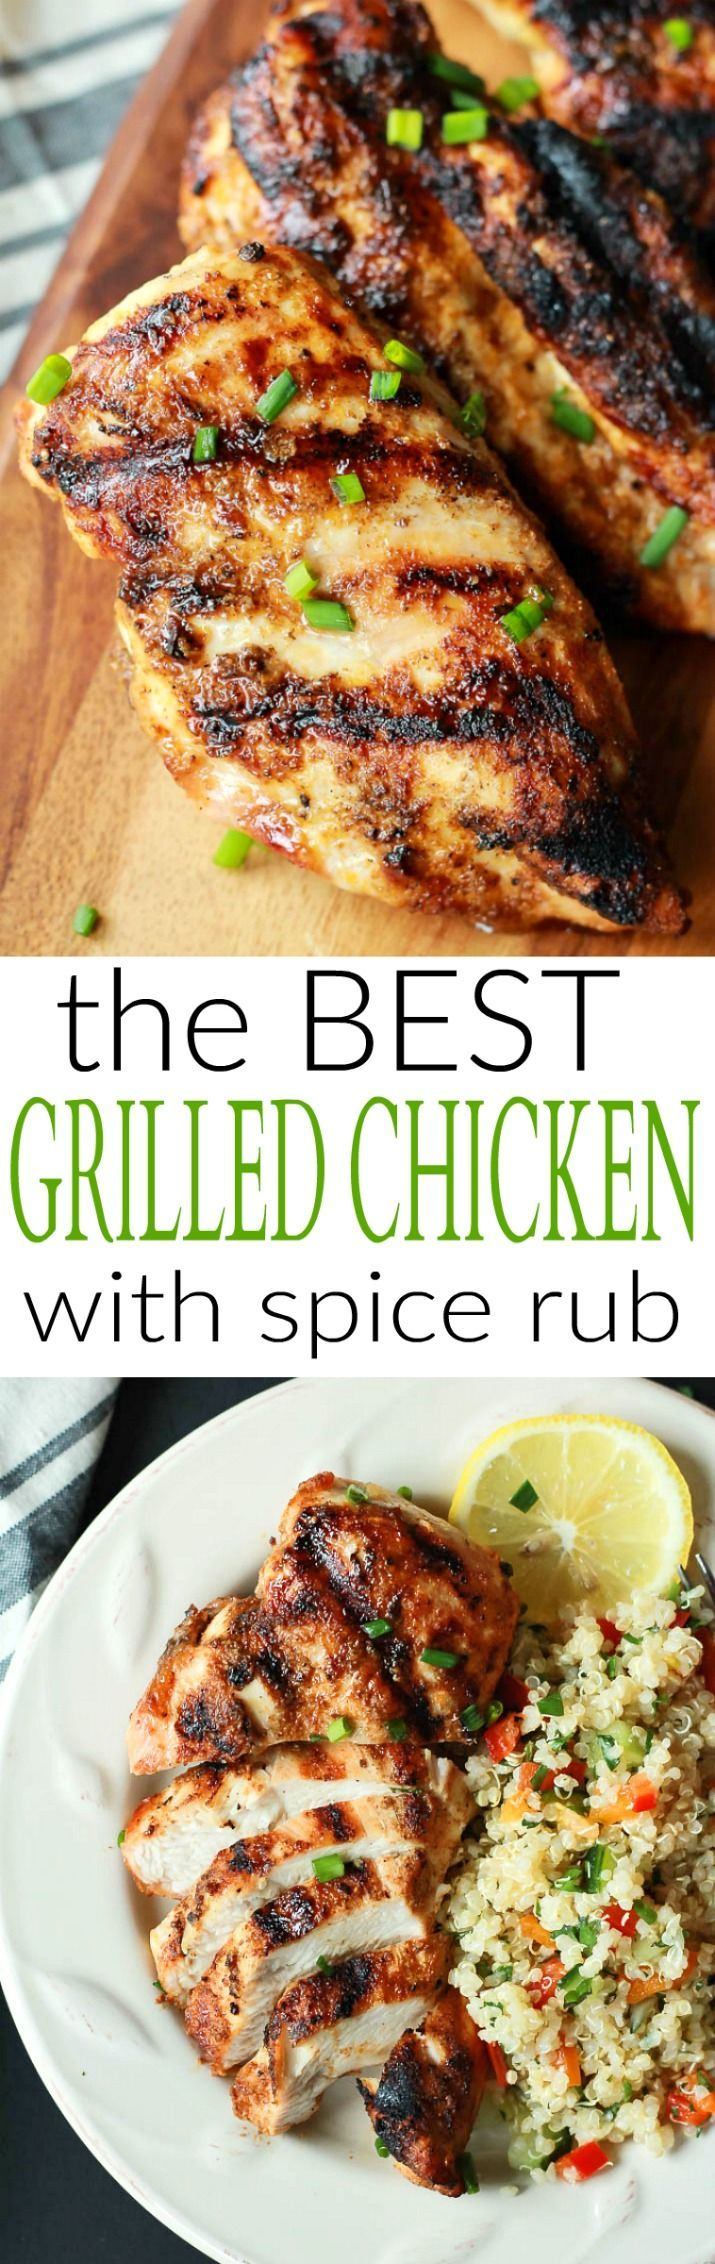 The BEST Grilled Chicken Recipe you will ever have! Full of flavor from an easy spice rub, moist, and done in less than 20 minutes!